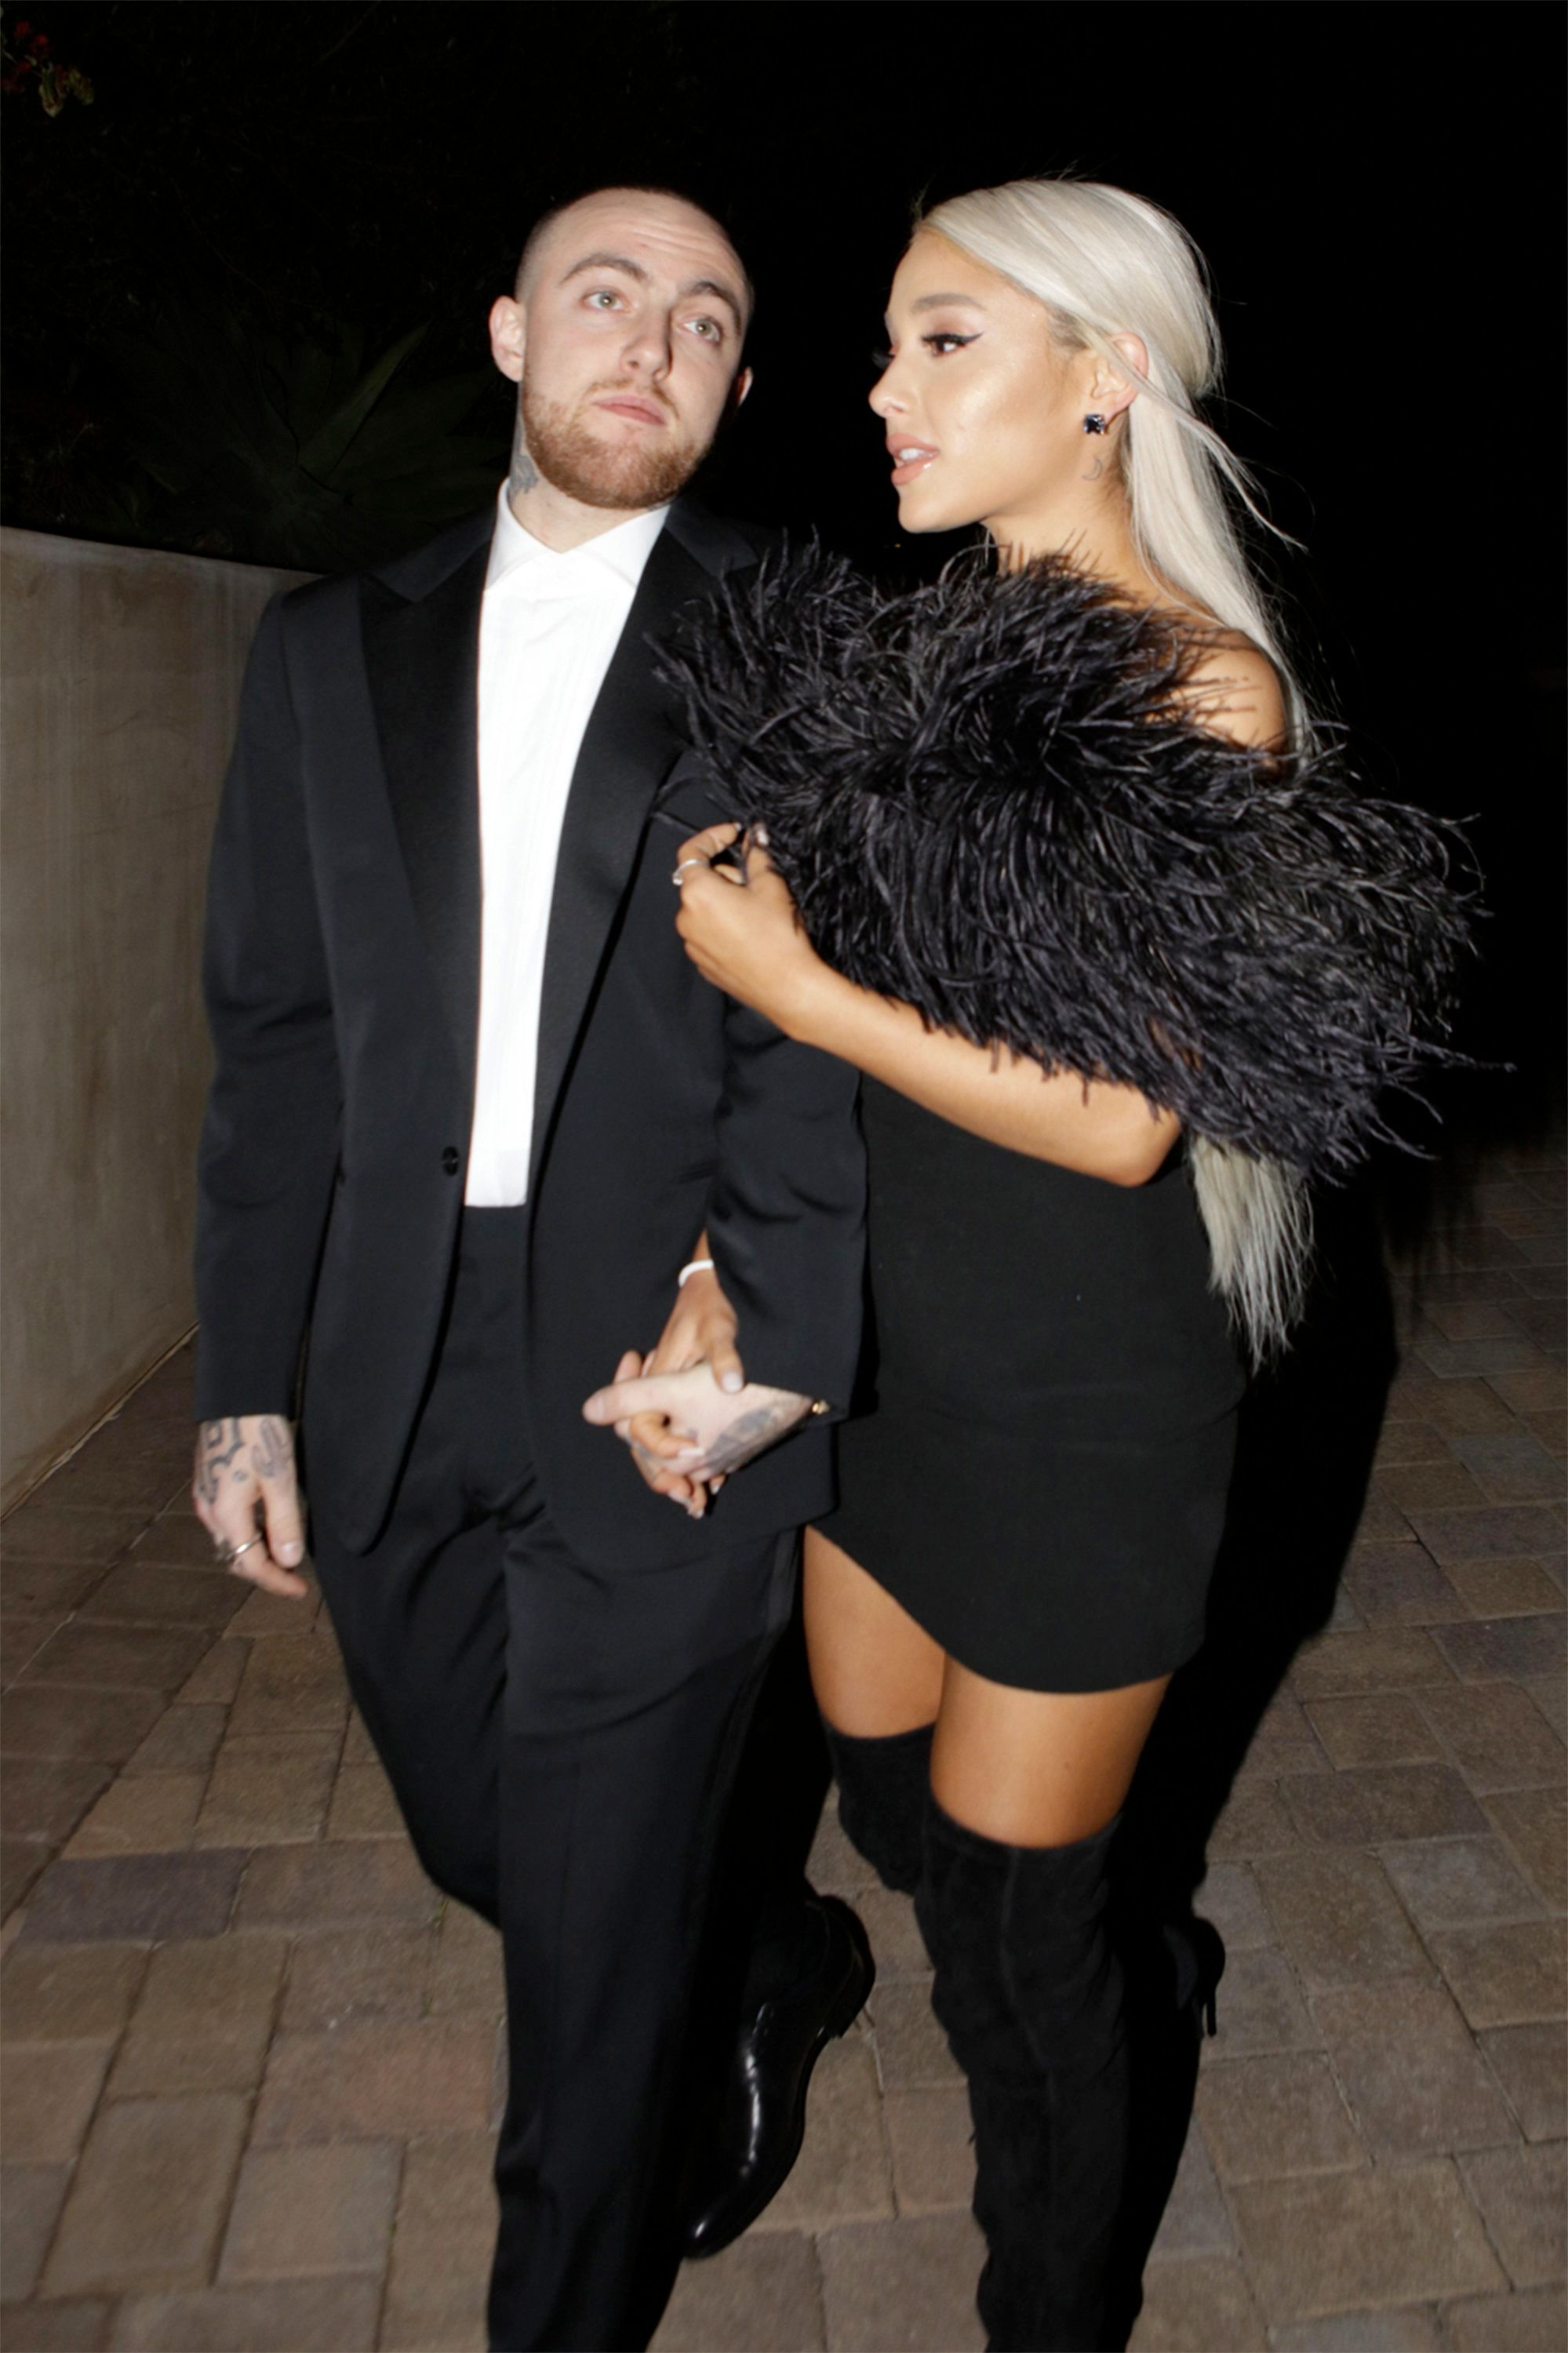 Mac Miller and Ariana Grande attend an Oscar party in March